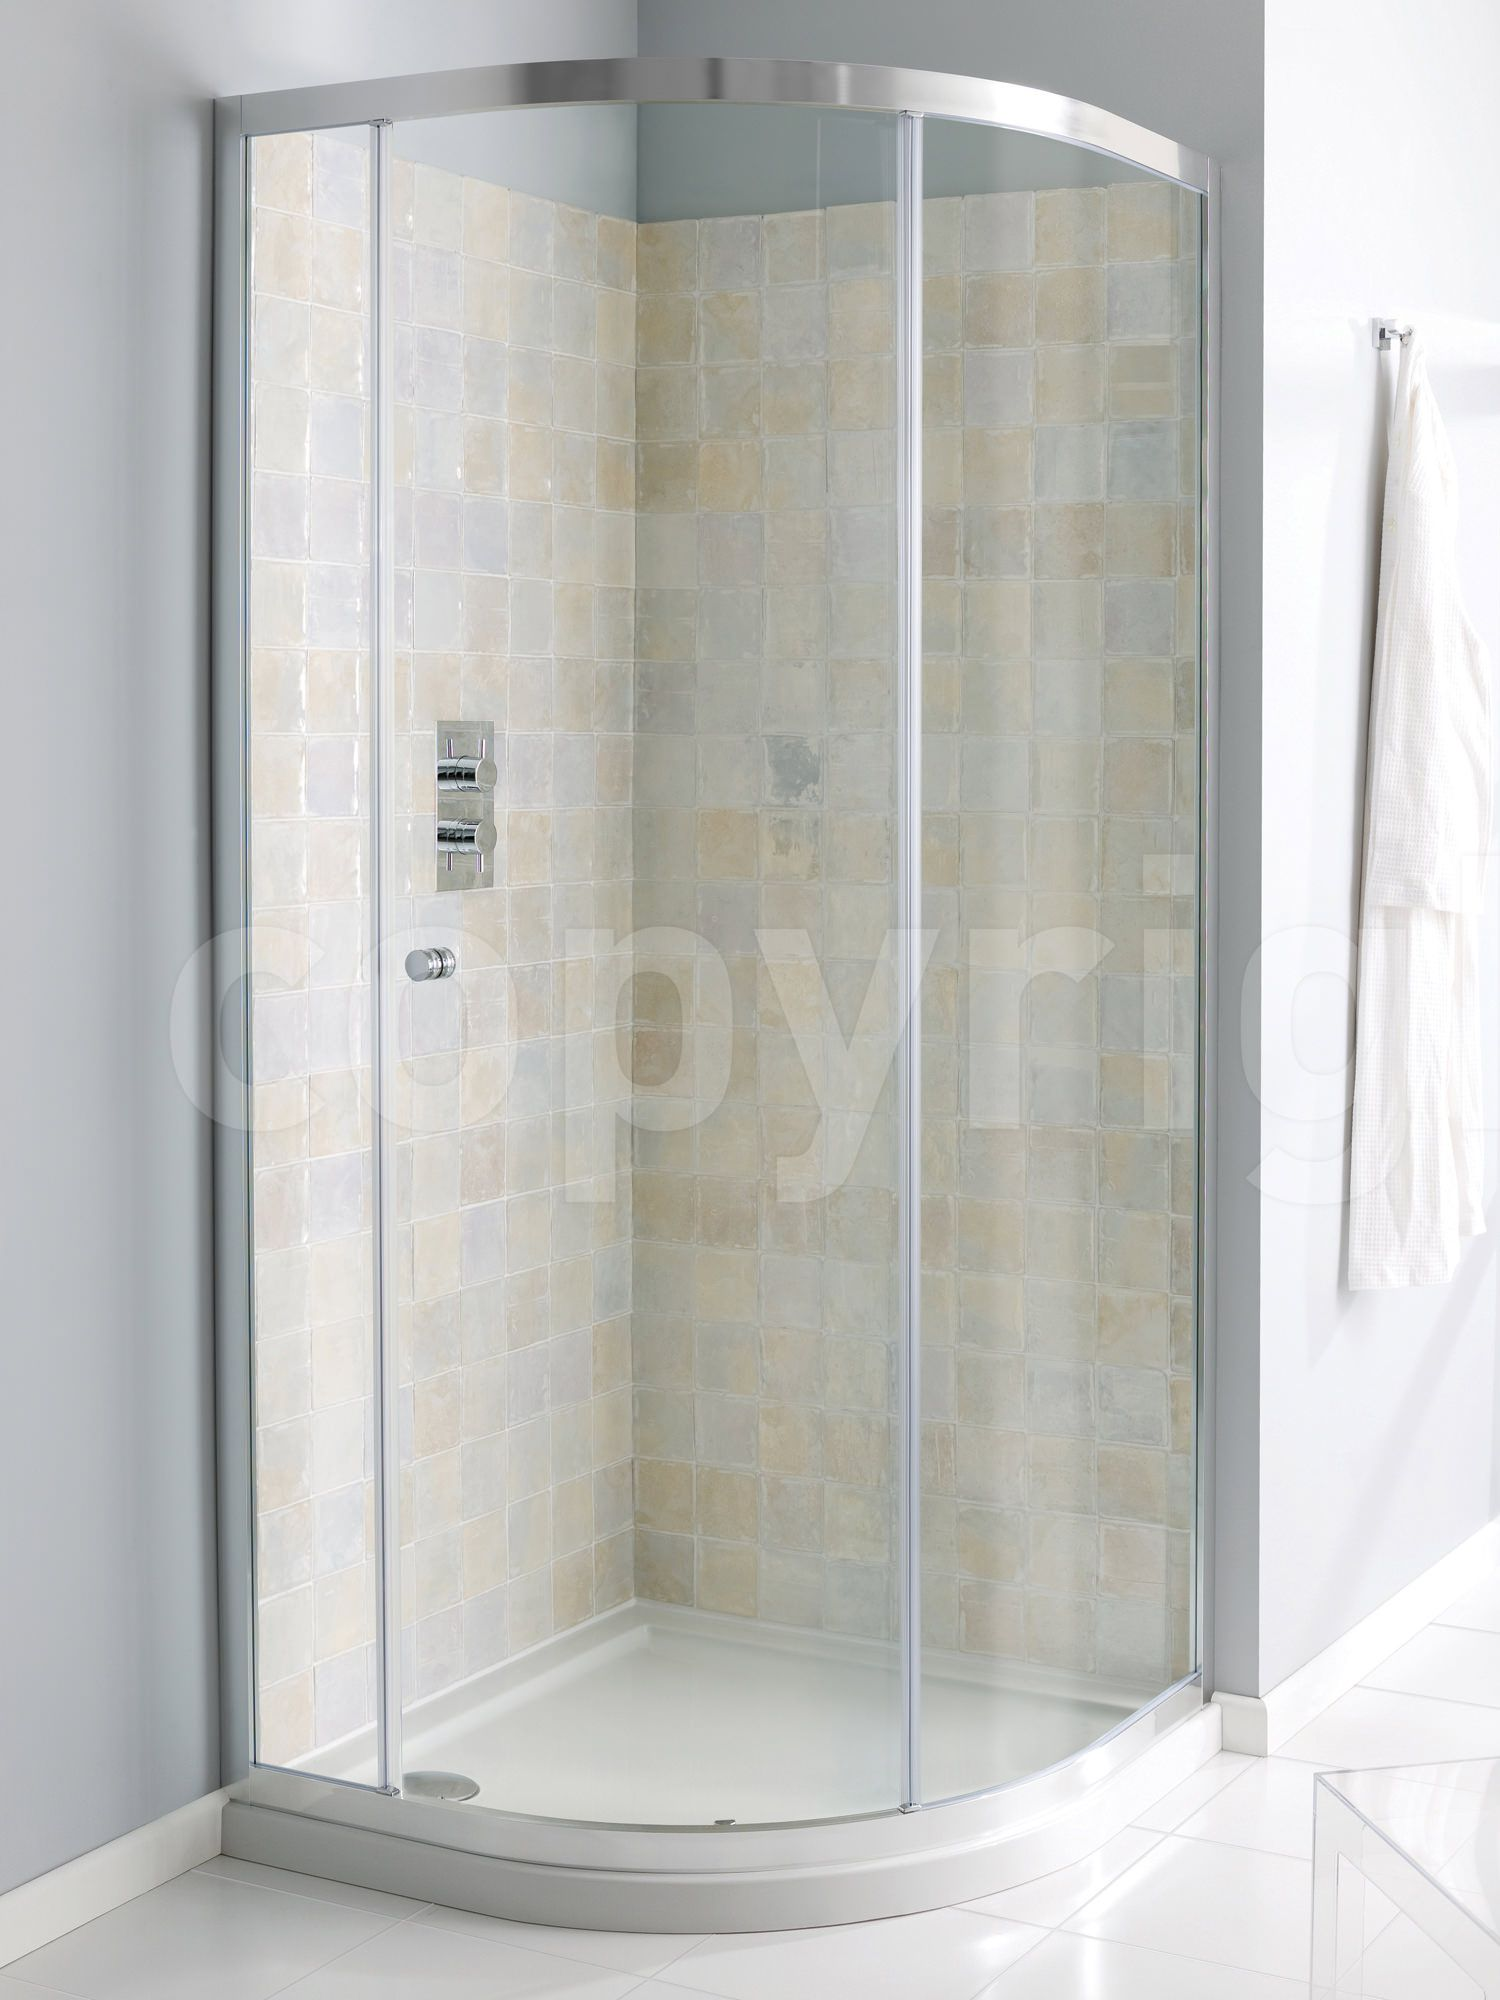 Simpsons Edge Single Door Quadrant Enclosure 800mm Eqssc0800 Quadrant Shower Enclosures Quadrant Shower Shower Enclosure